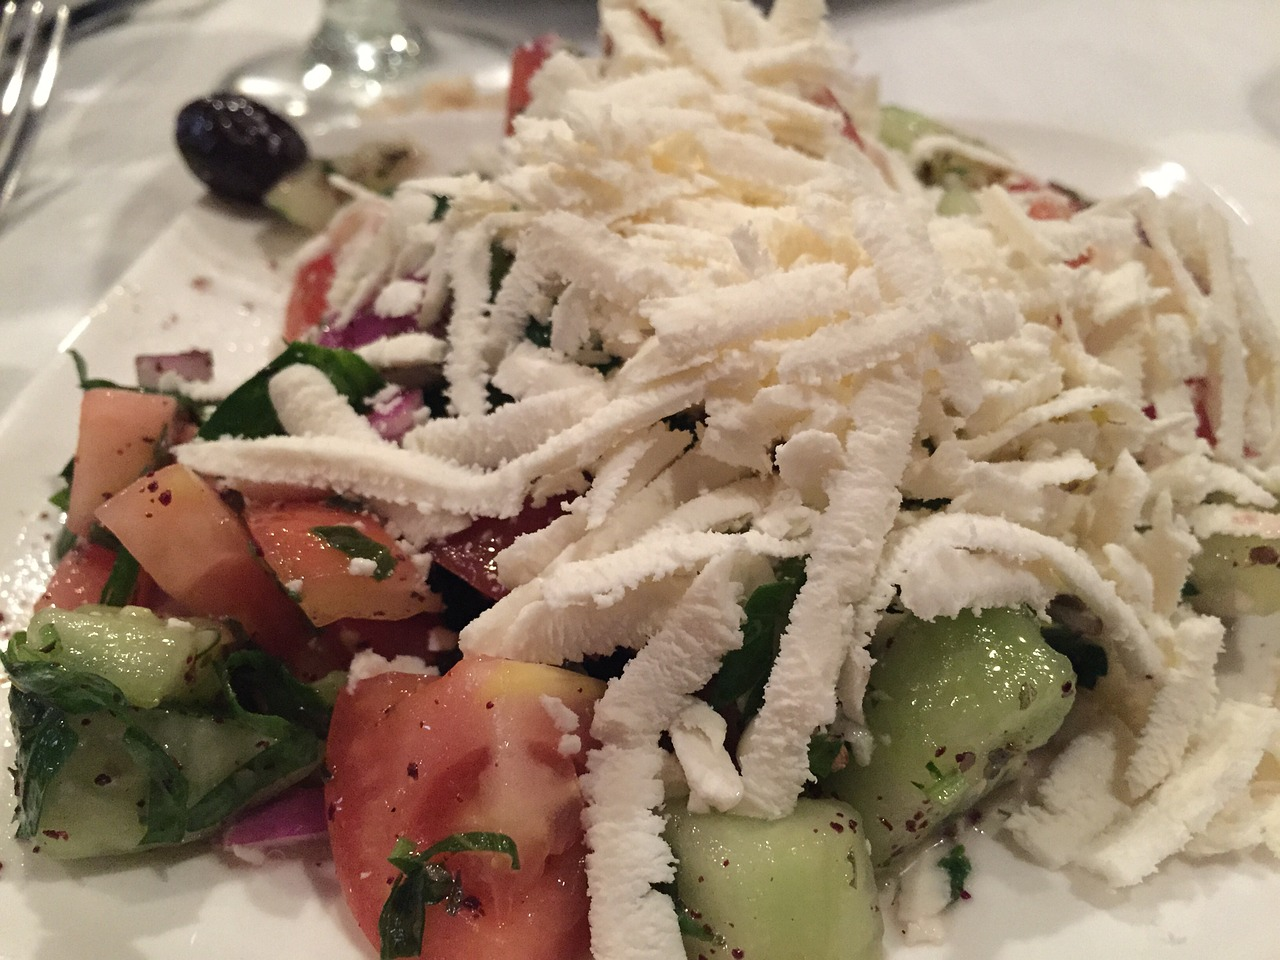 greek salad with heavy layer of shredded feta over cucumbers, tomatoes, and onions